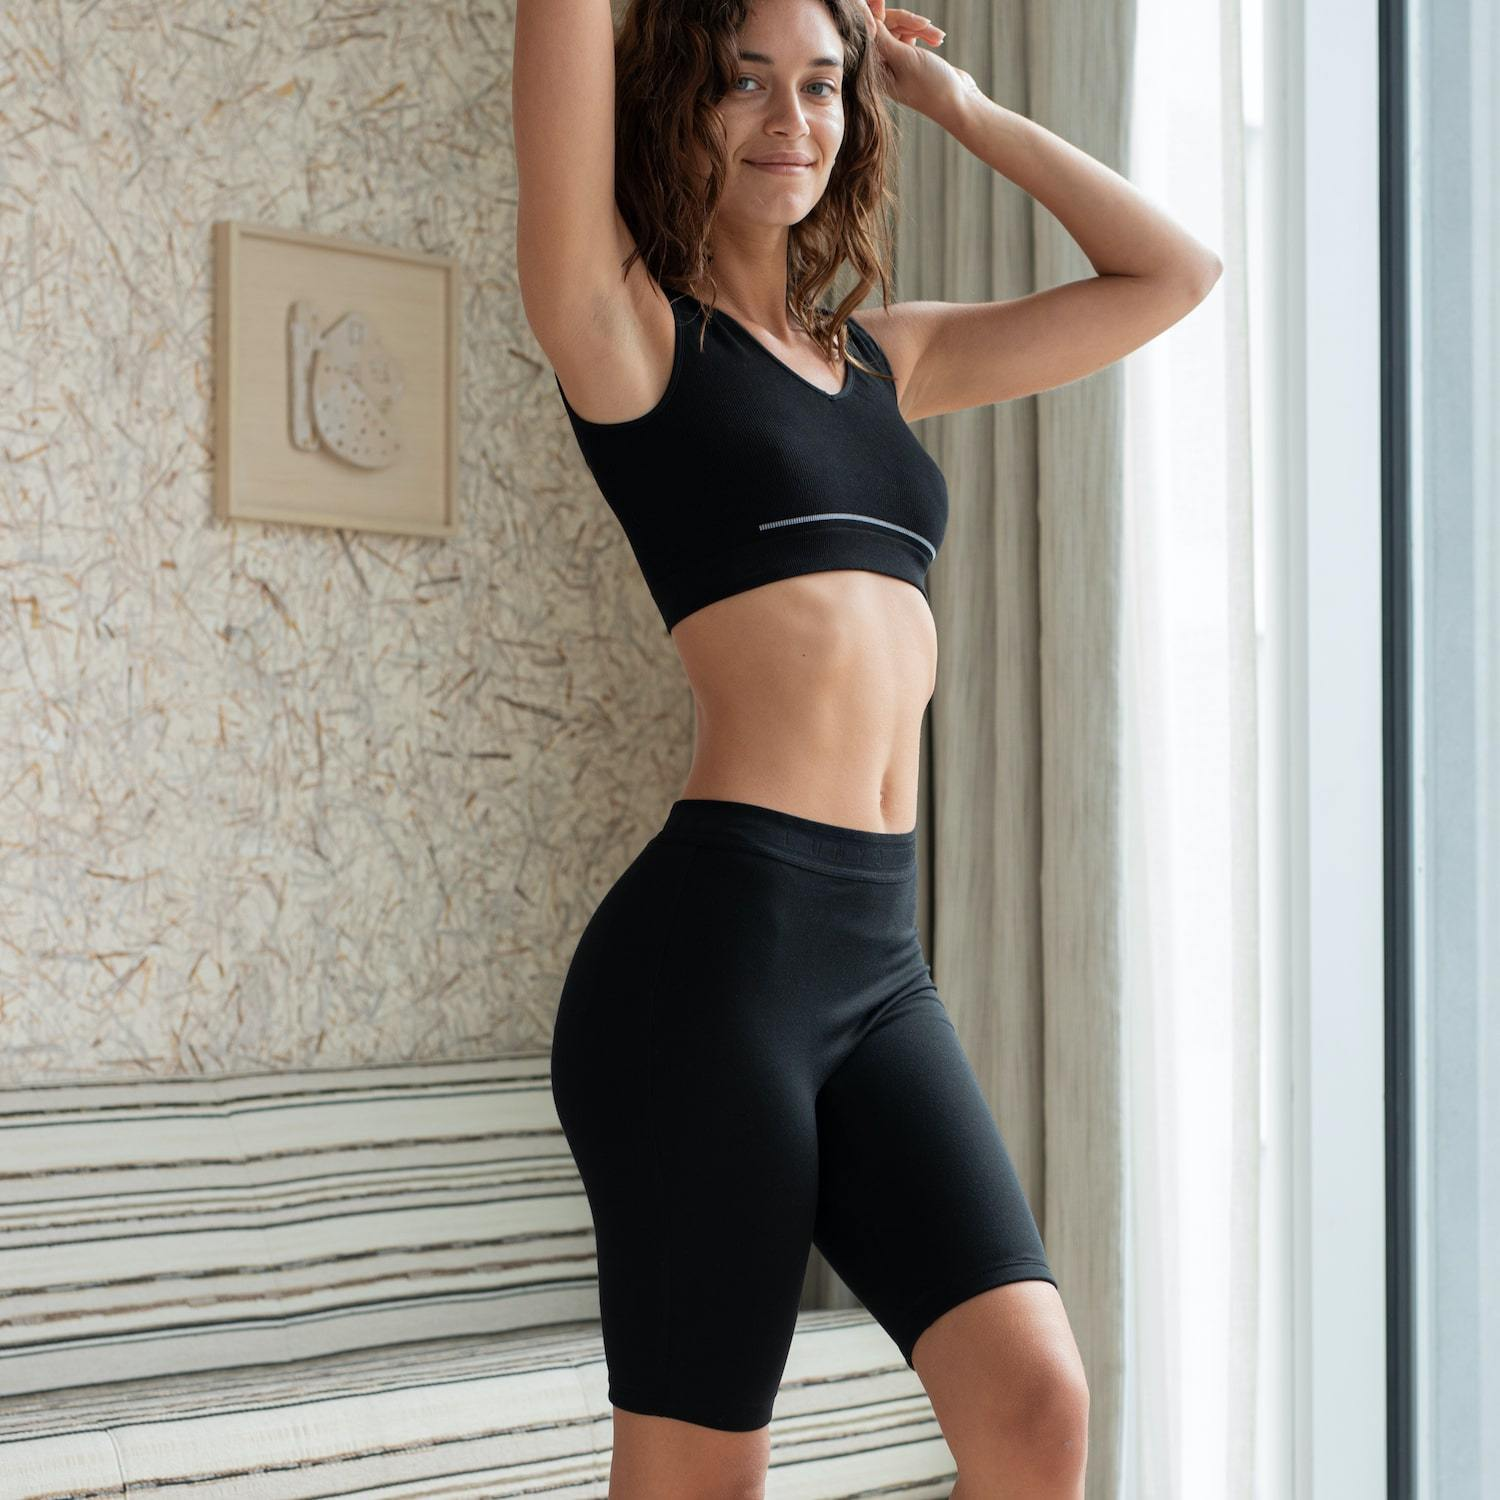 Lunya Sleepwear Siro Bike Short - #Black/Black